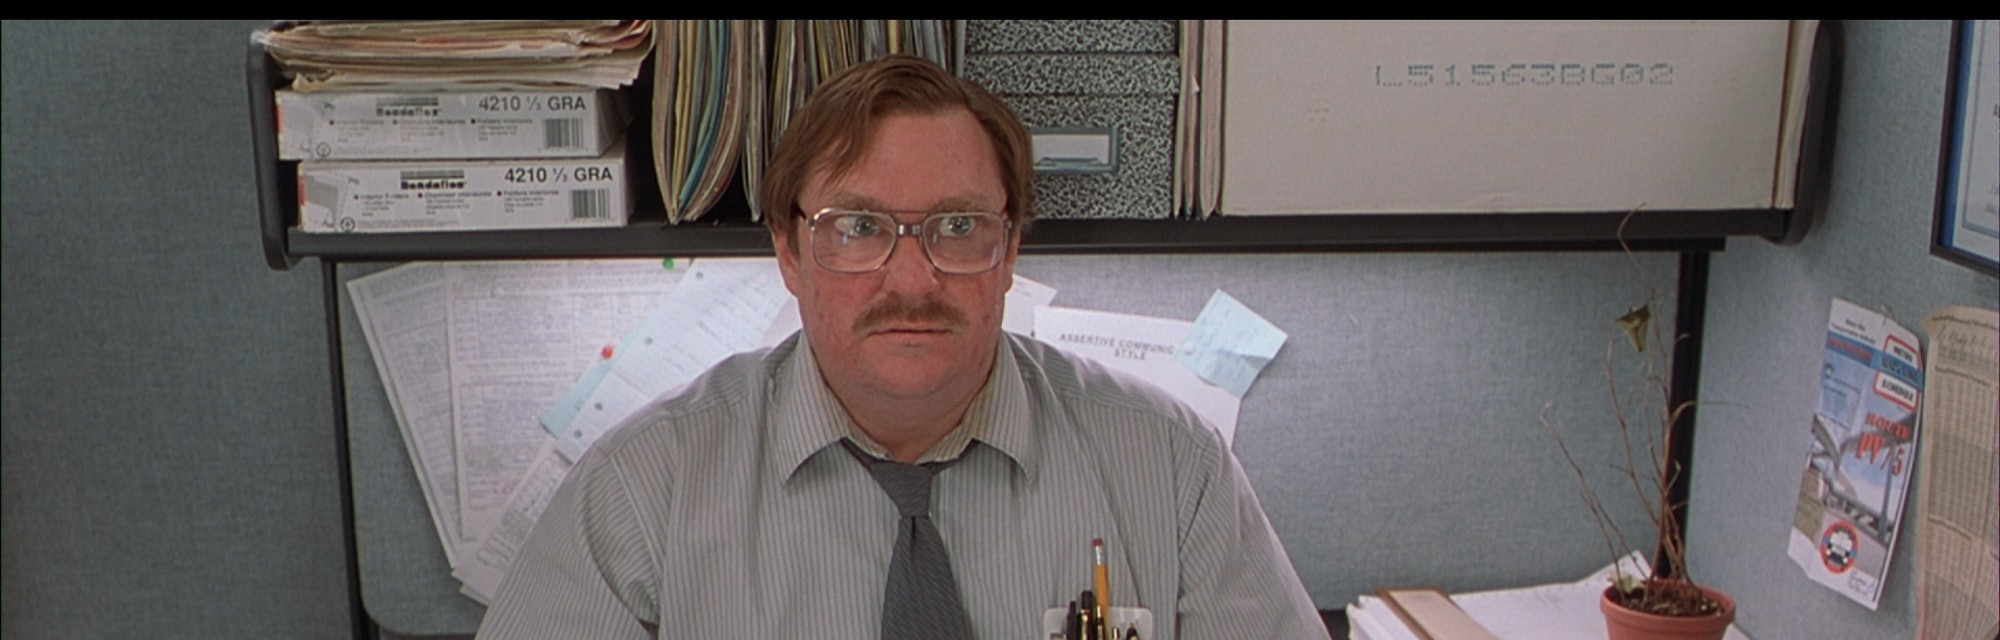 a still of milton from office space